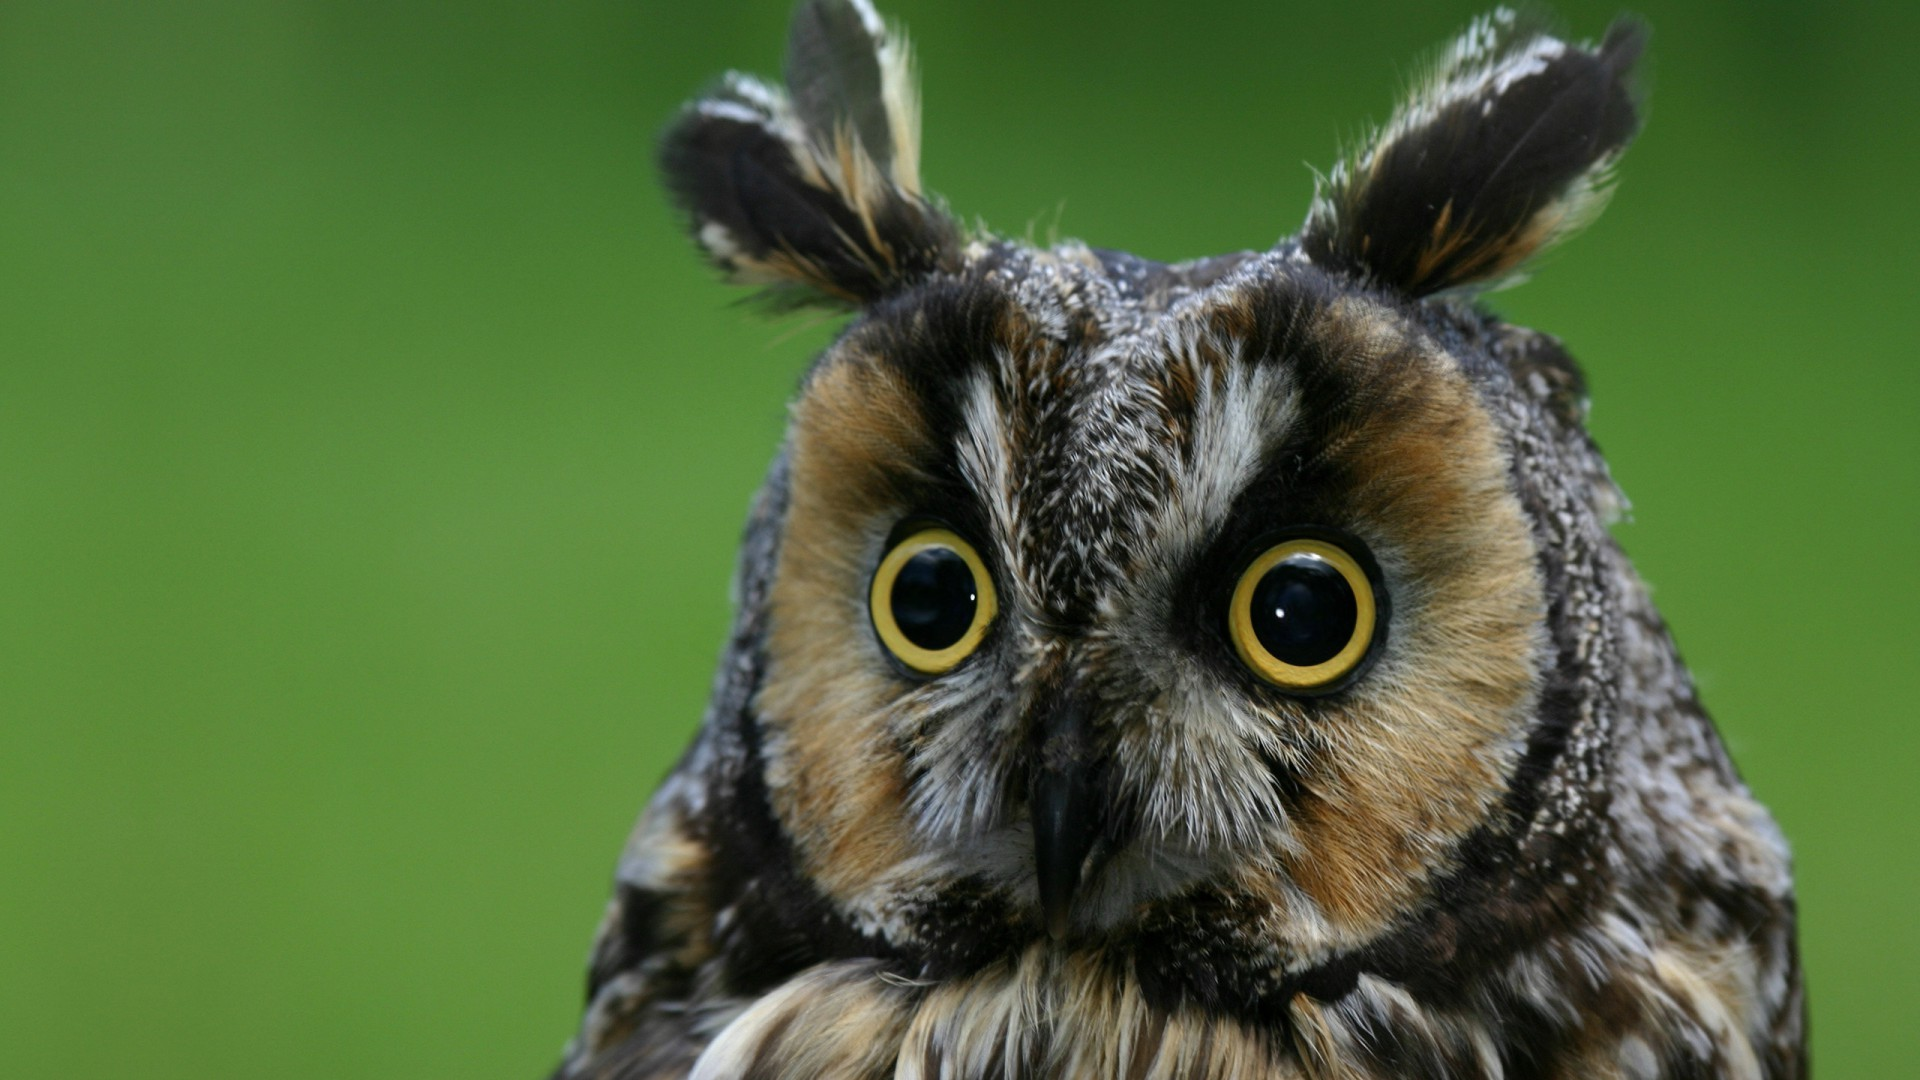 Owl, eagle-owl, funny, nature, plumy (horizontal)